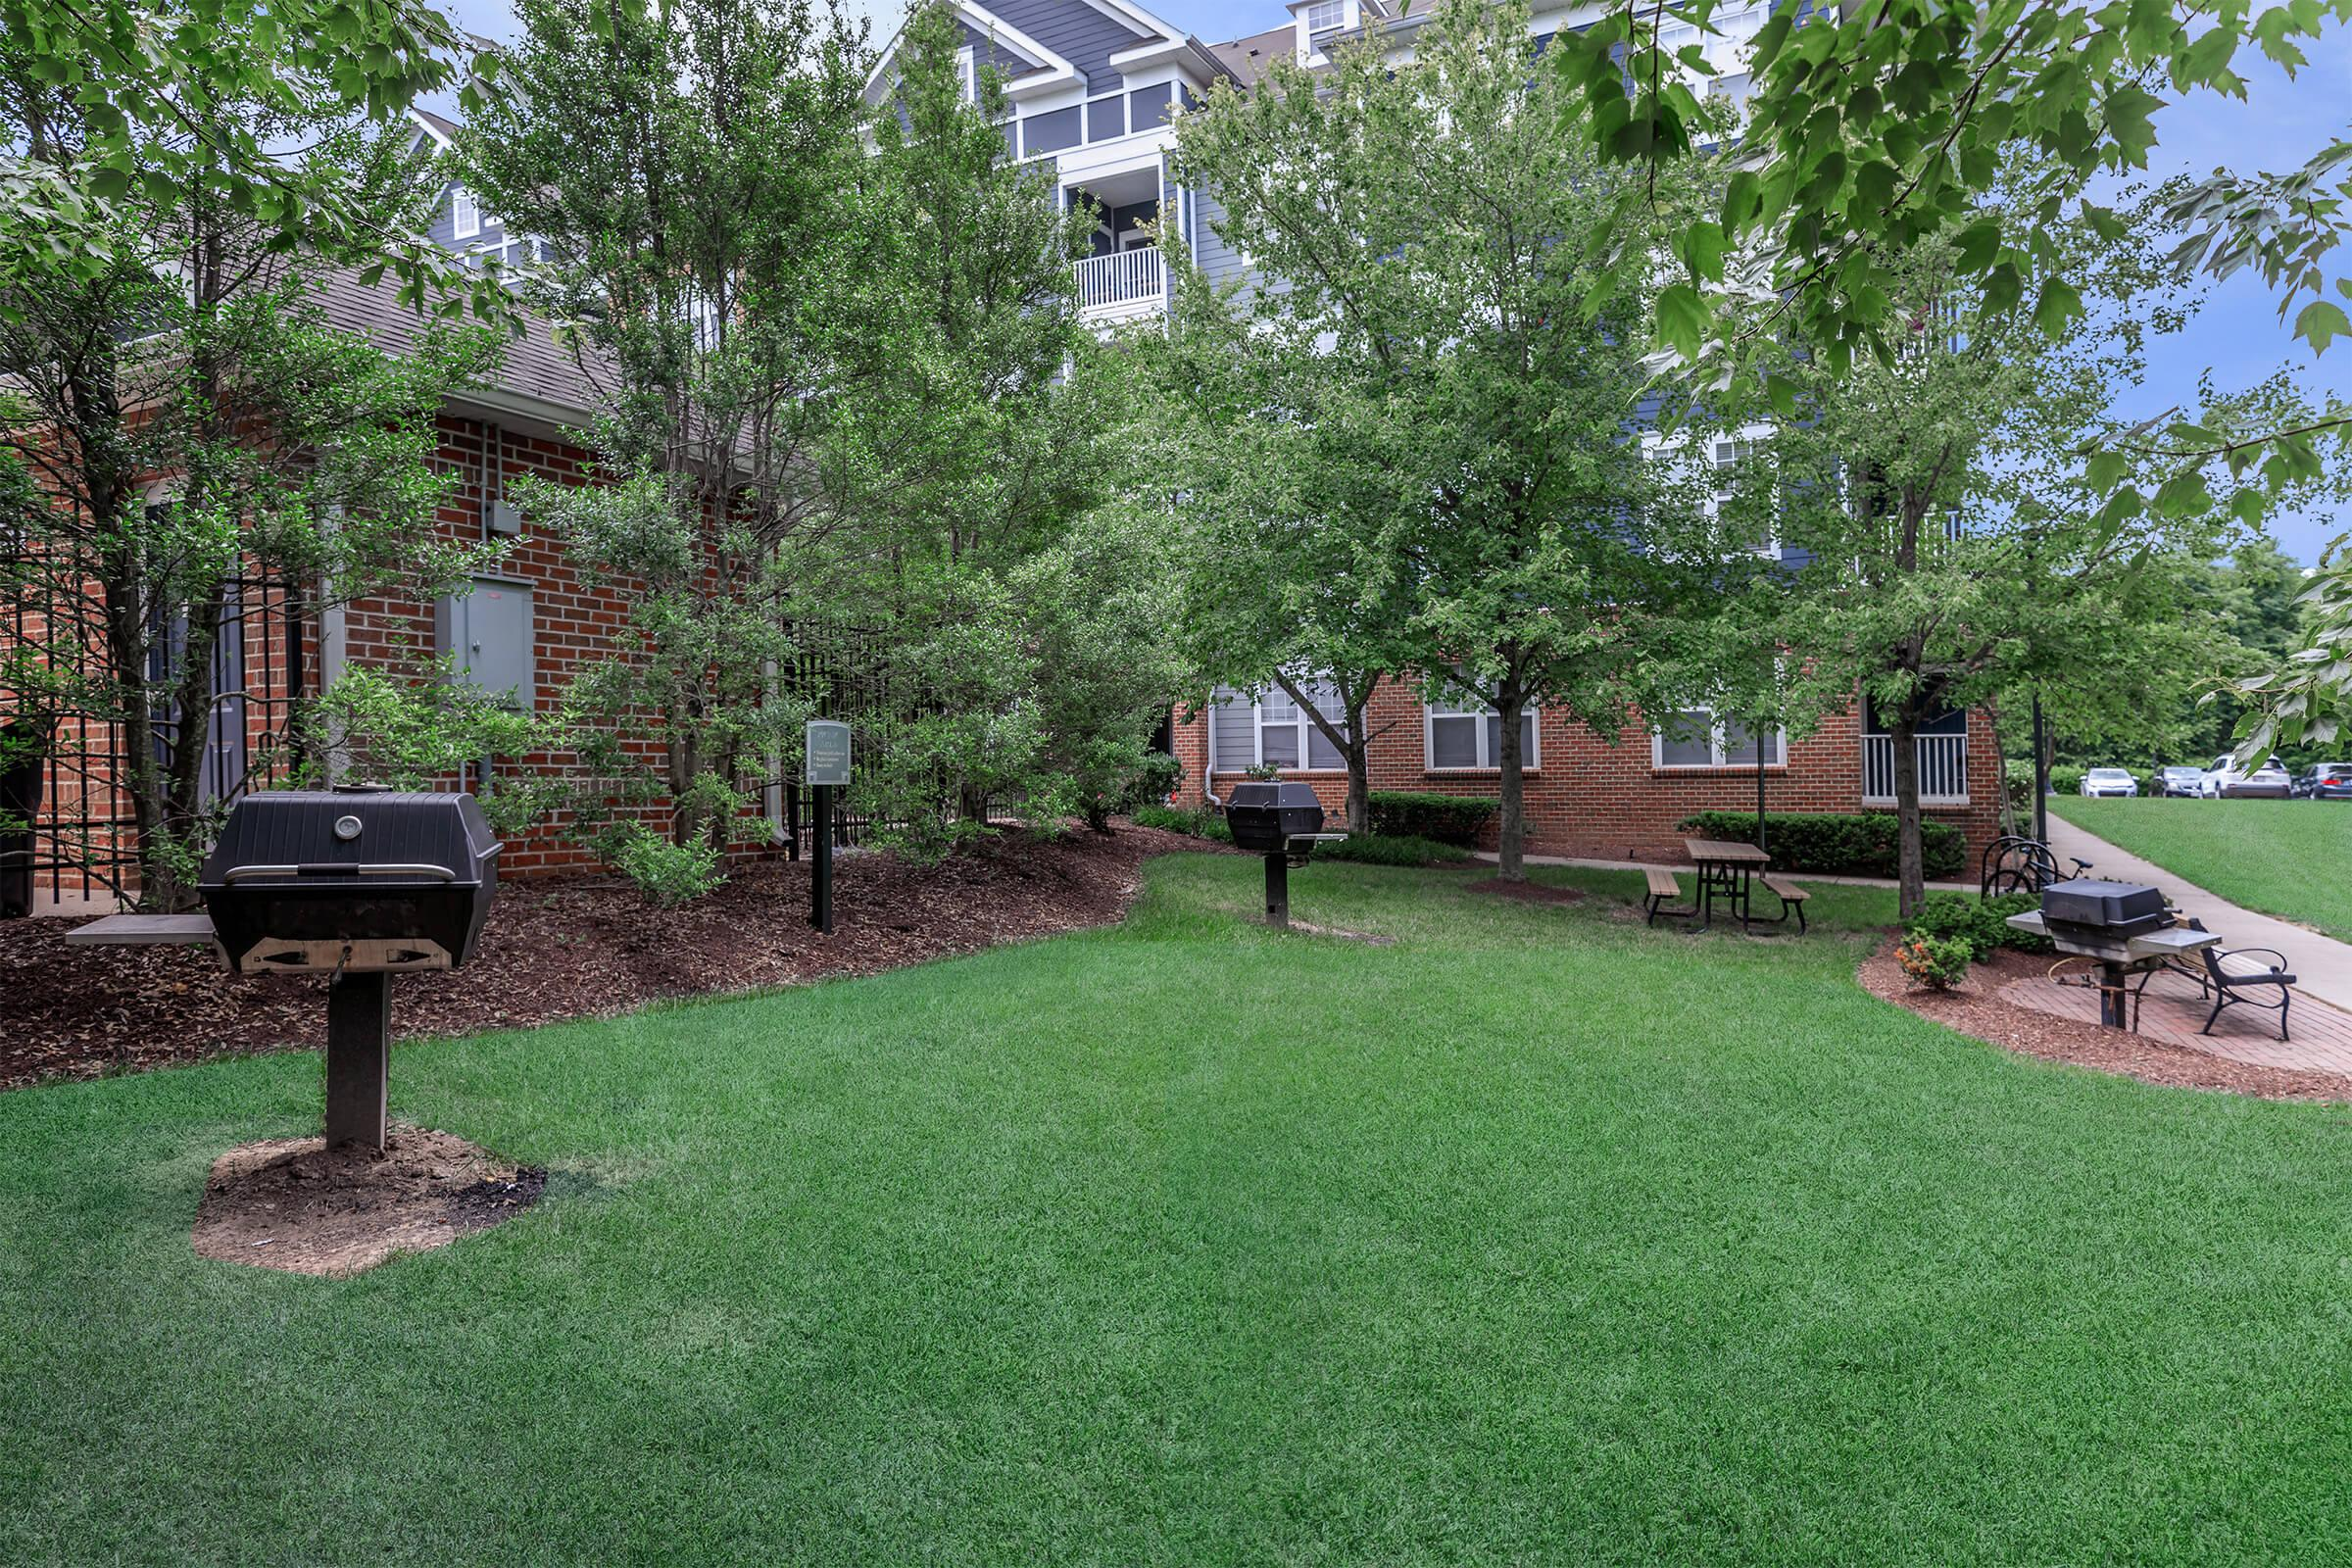 Landscaping at The Rothbury in Gaithersburg, MD